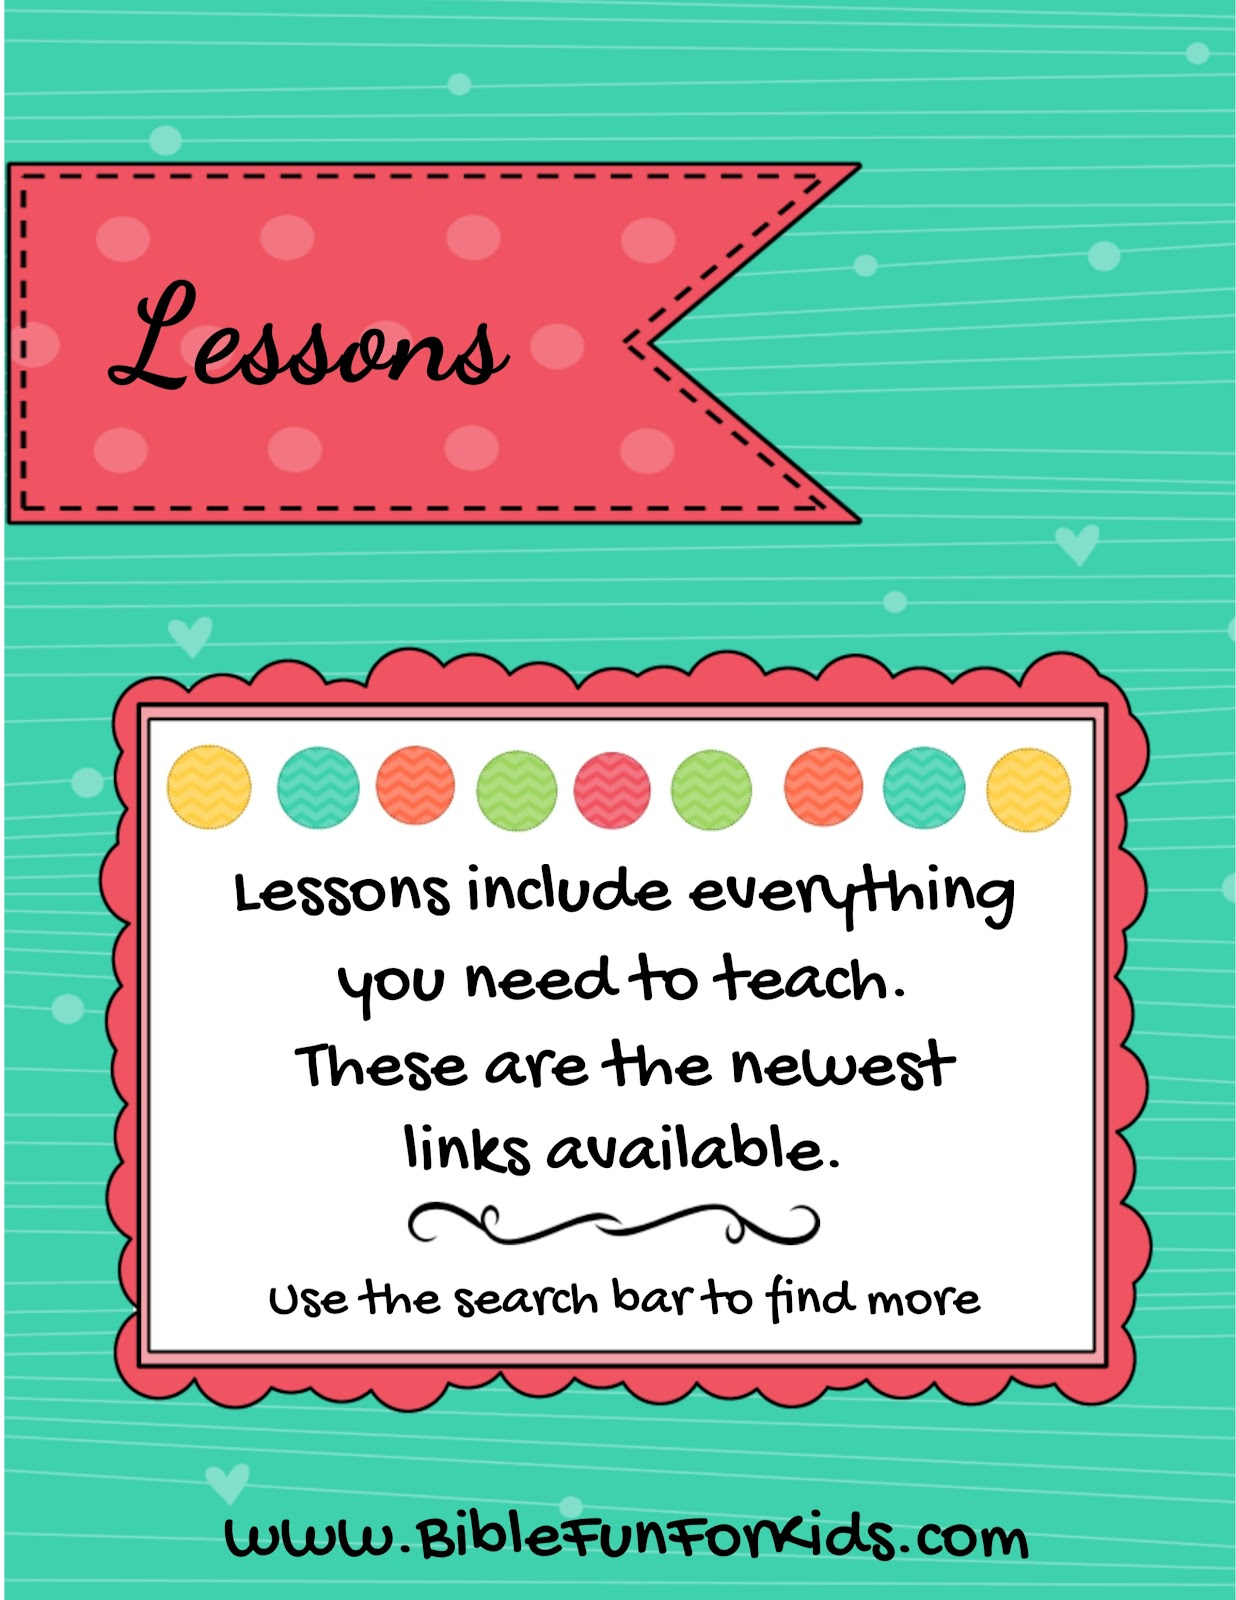 Bible Fun For Kids: Lesson Links